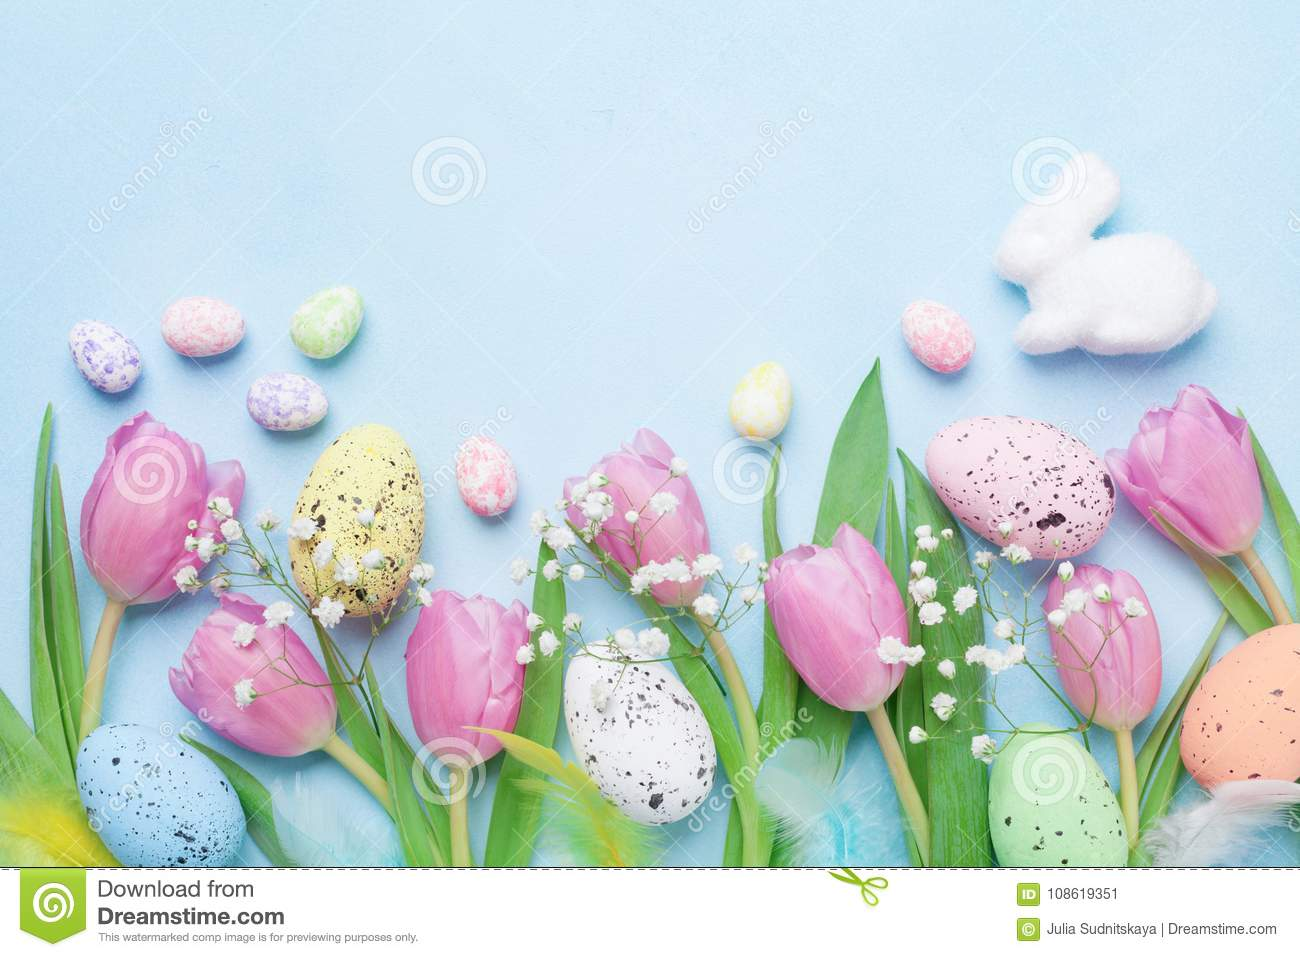 Spring background with flowers, bunny, colorful eggs and feathers on blue table top view. Happy Easter card.